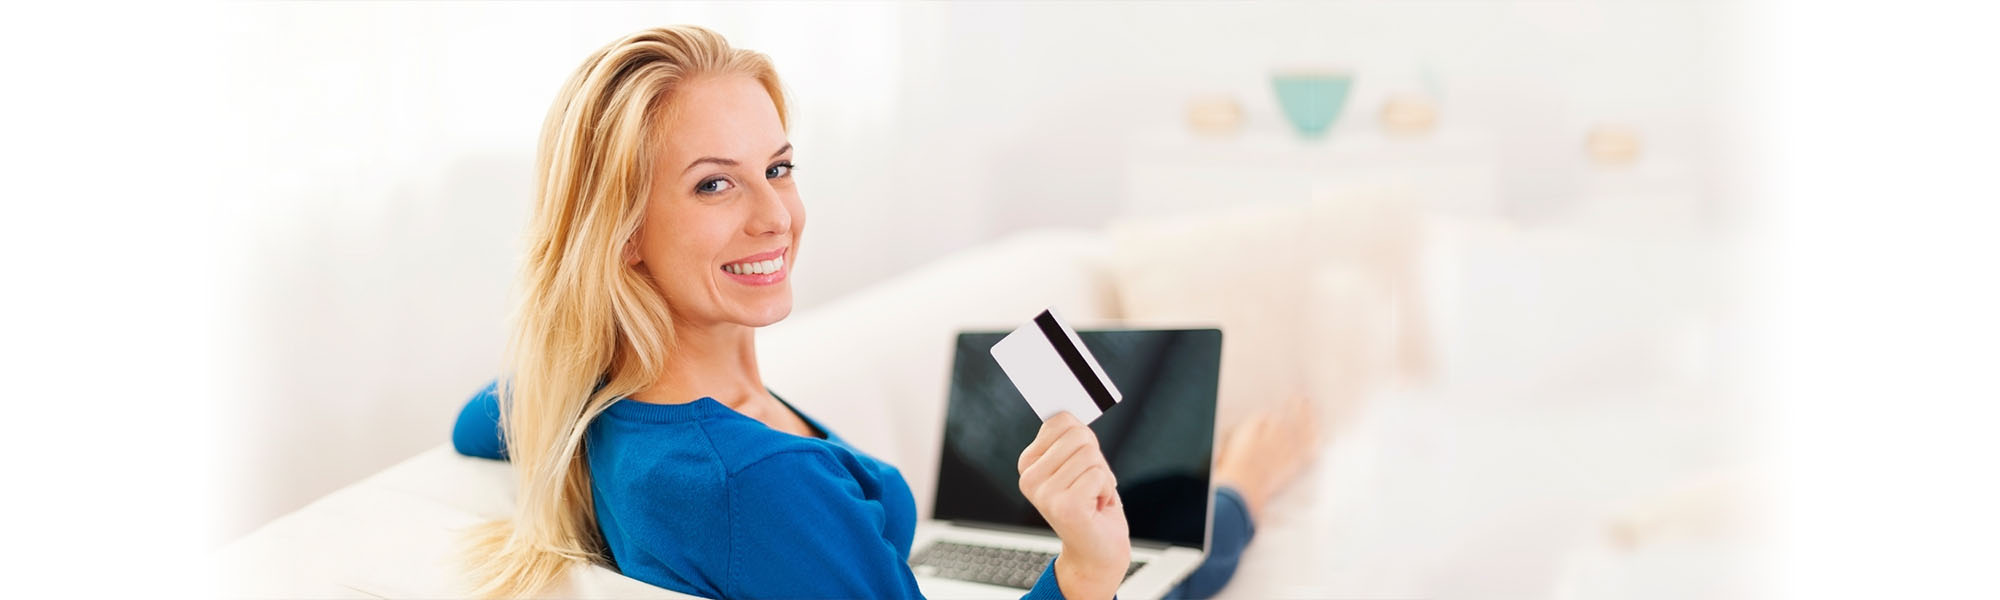 Discount Authorize net - Credit Card Processing For Business Merchants